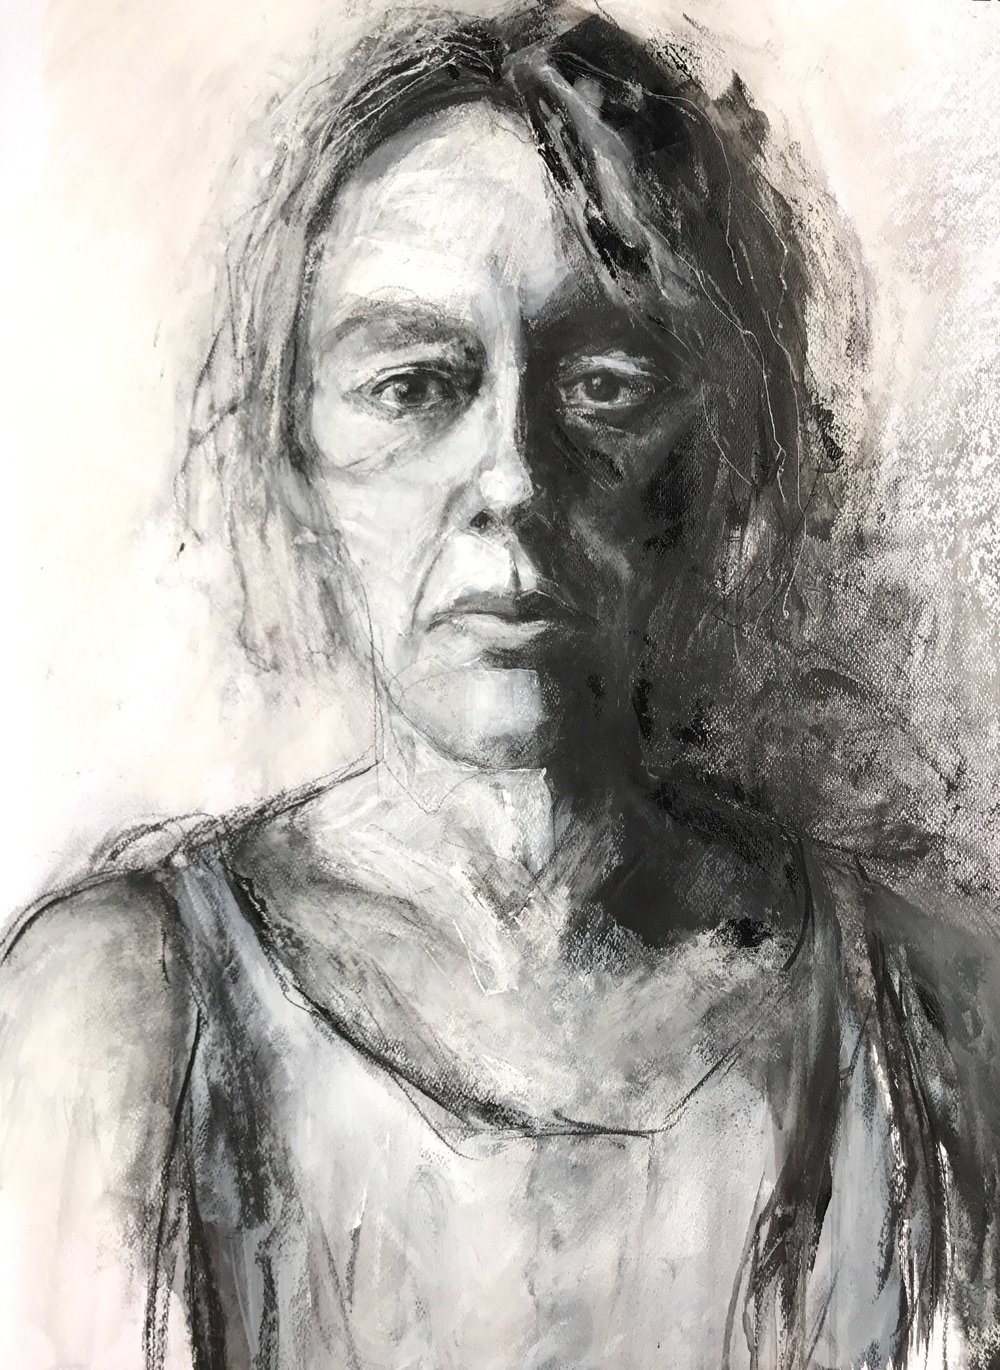 Self-portrait. Taking it further,charcoal, conte, ink and acrylic on watercolour paper